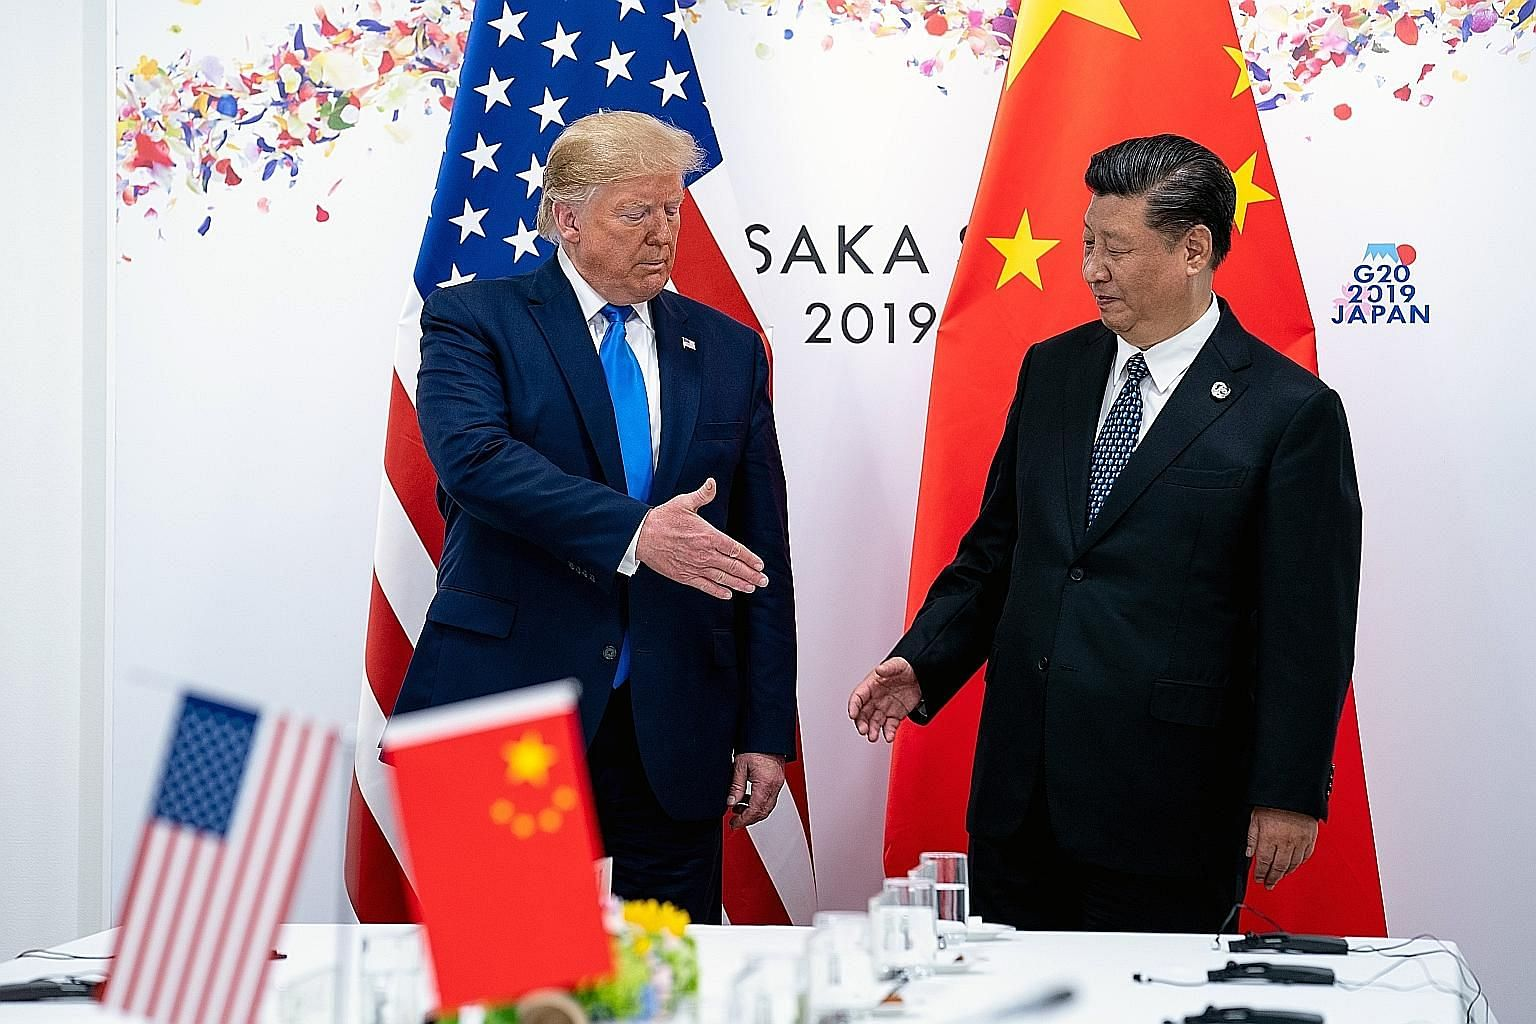 US President Donald Trump and China's leader Xi Jinping at a bilateral meeting at the Group of 20 summit in Japan last year. Shanghai-based former diplomat Kenneth Jarrett reckons that four more years of the Trump administration would give China more